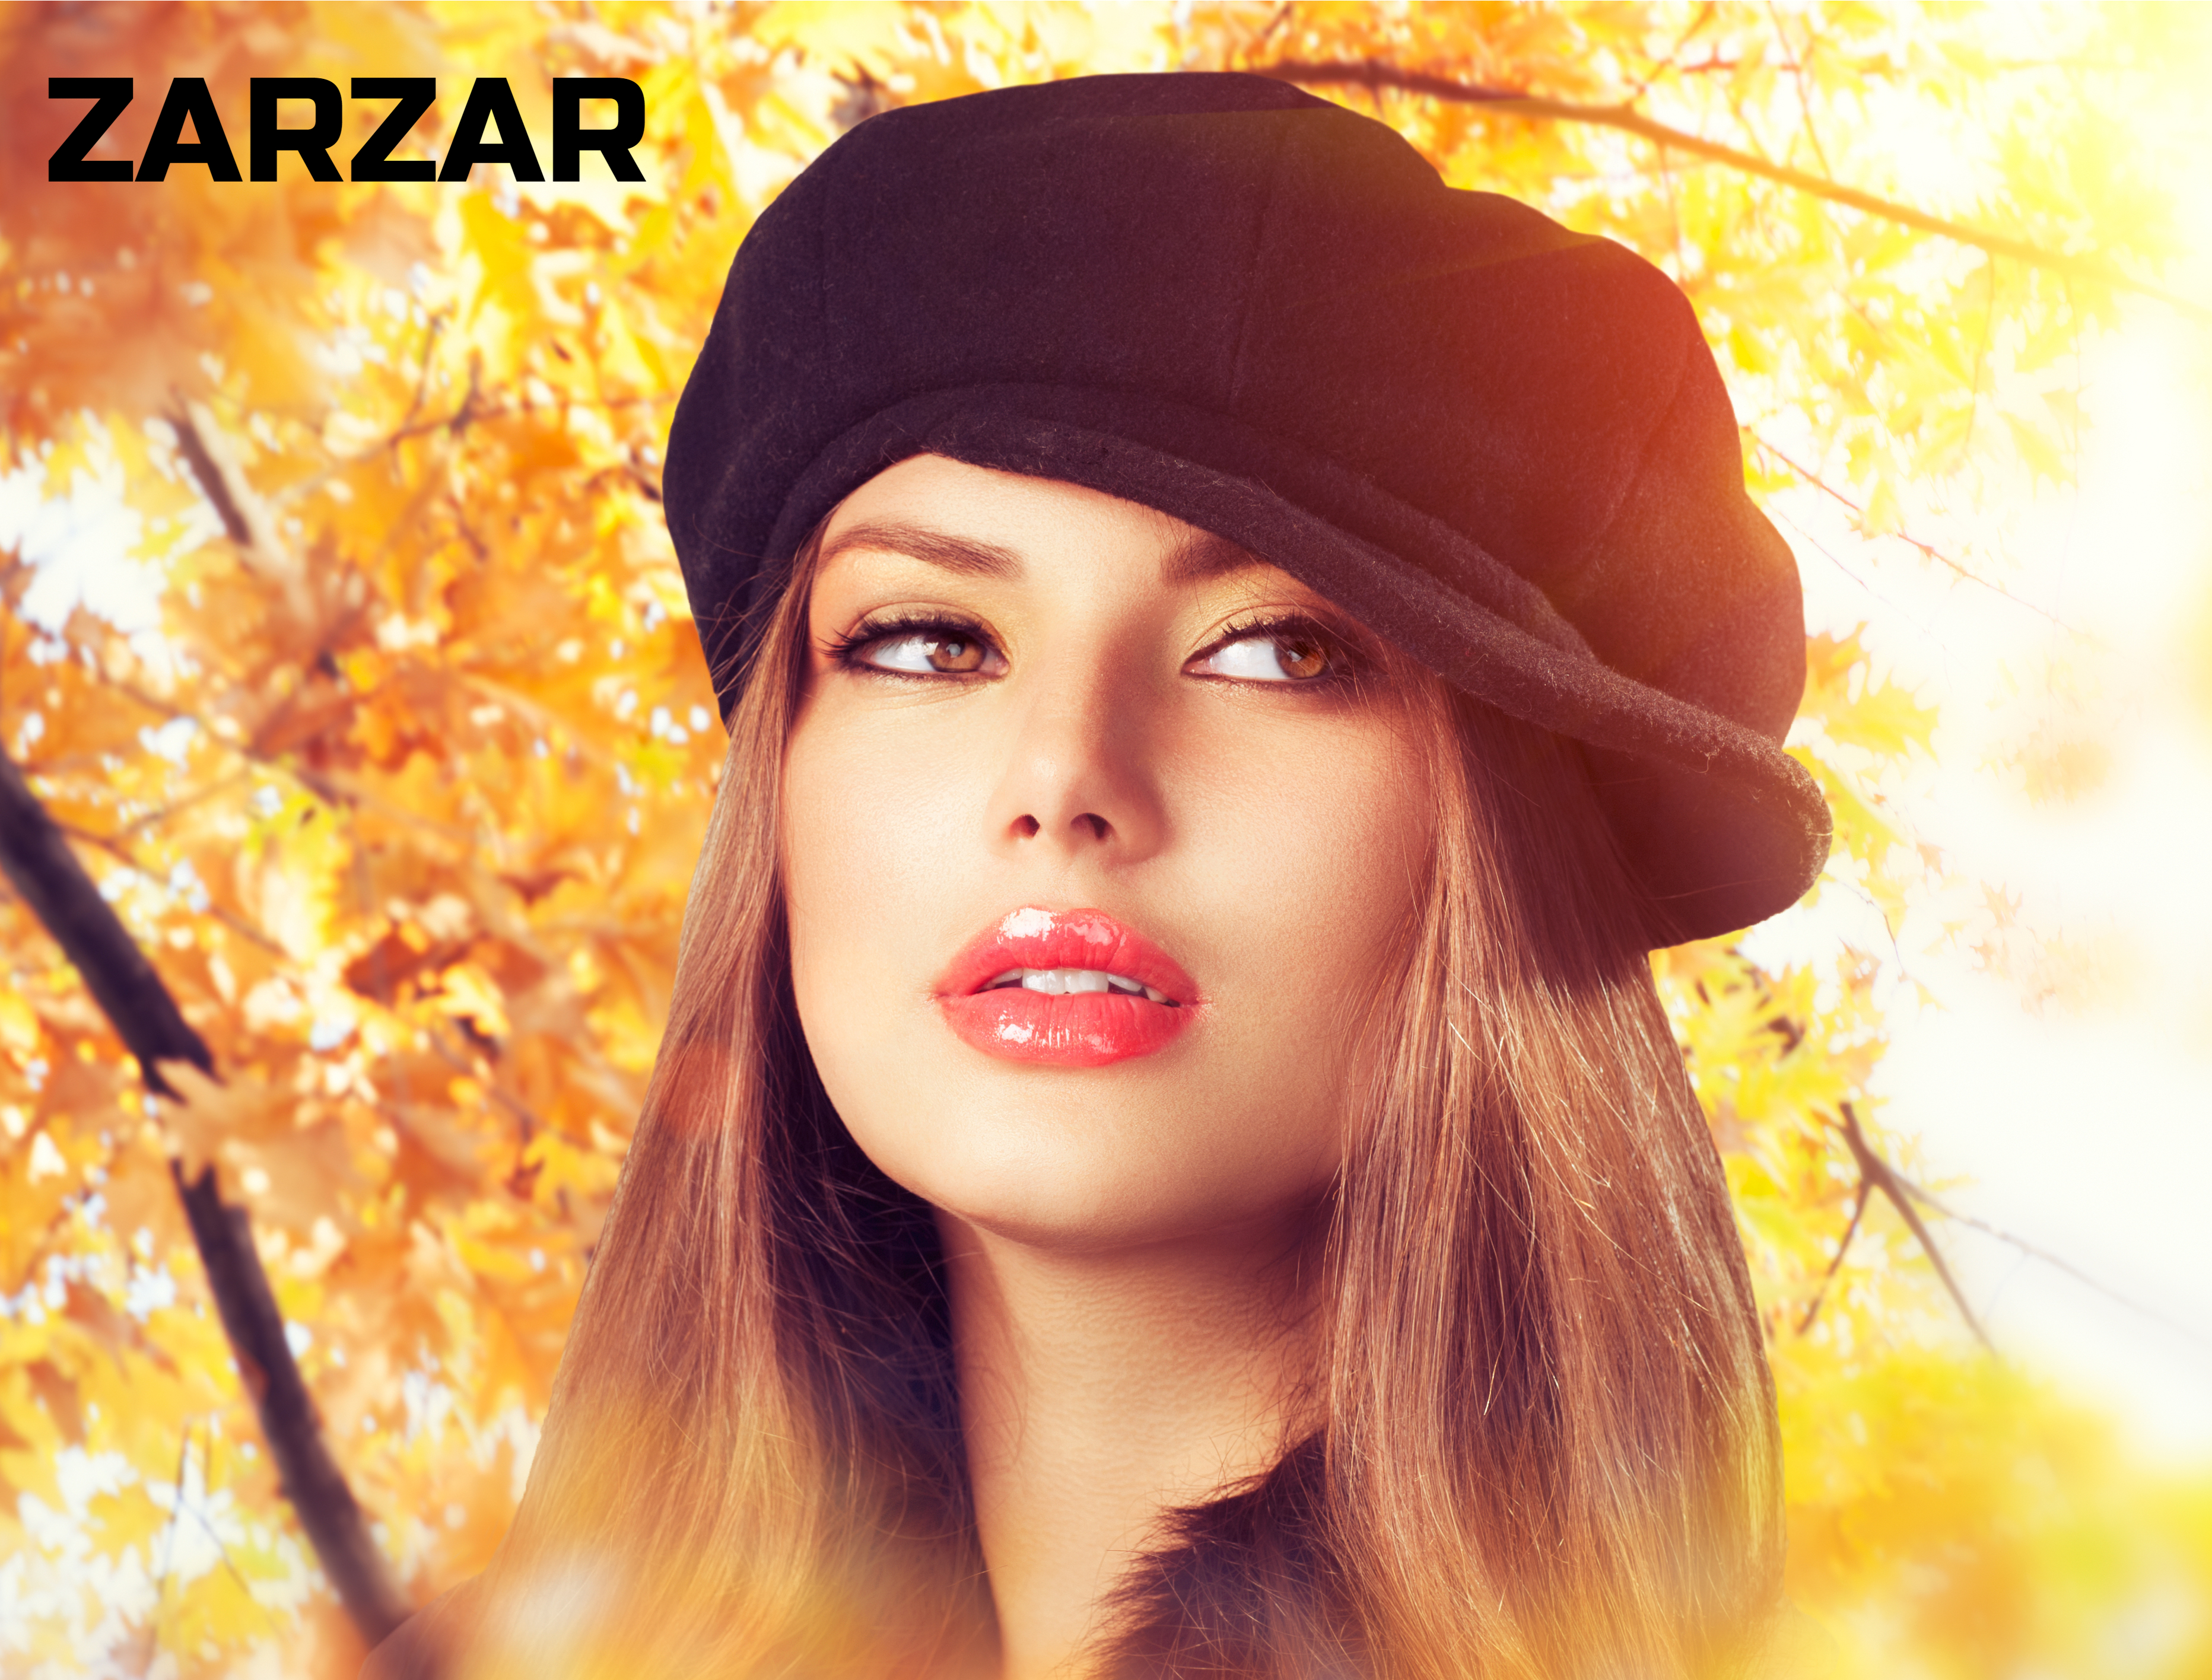 ZARZAR MODELS Orange County California Fashion Models Top Modeling Agencies For Women In Orange County Southern California.